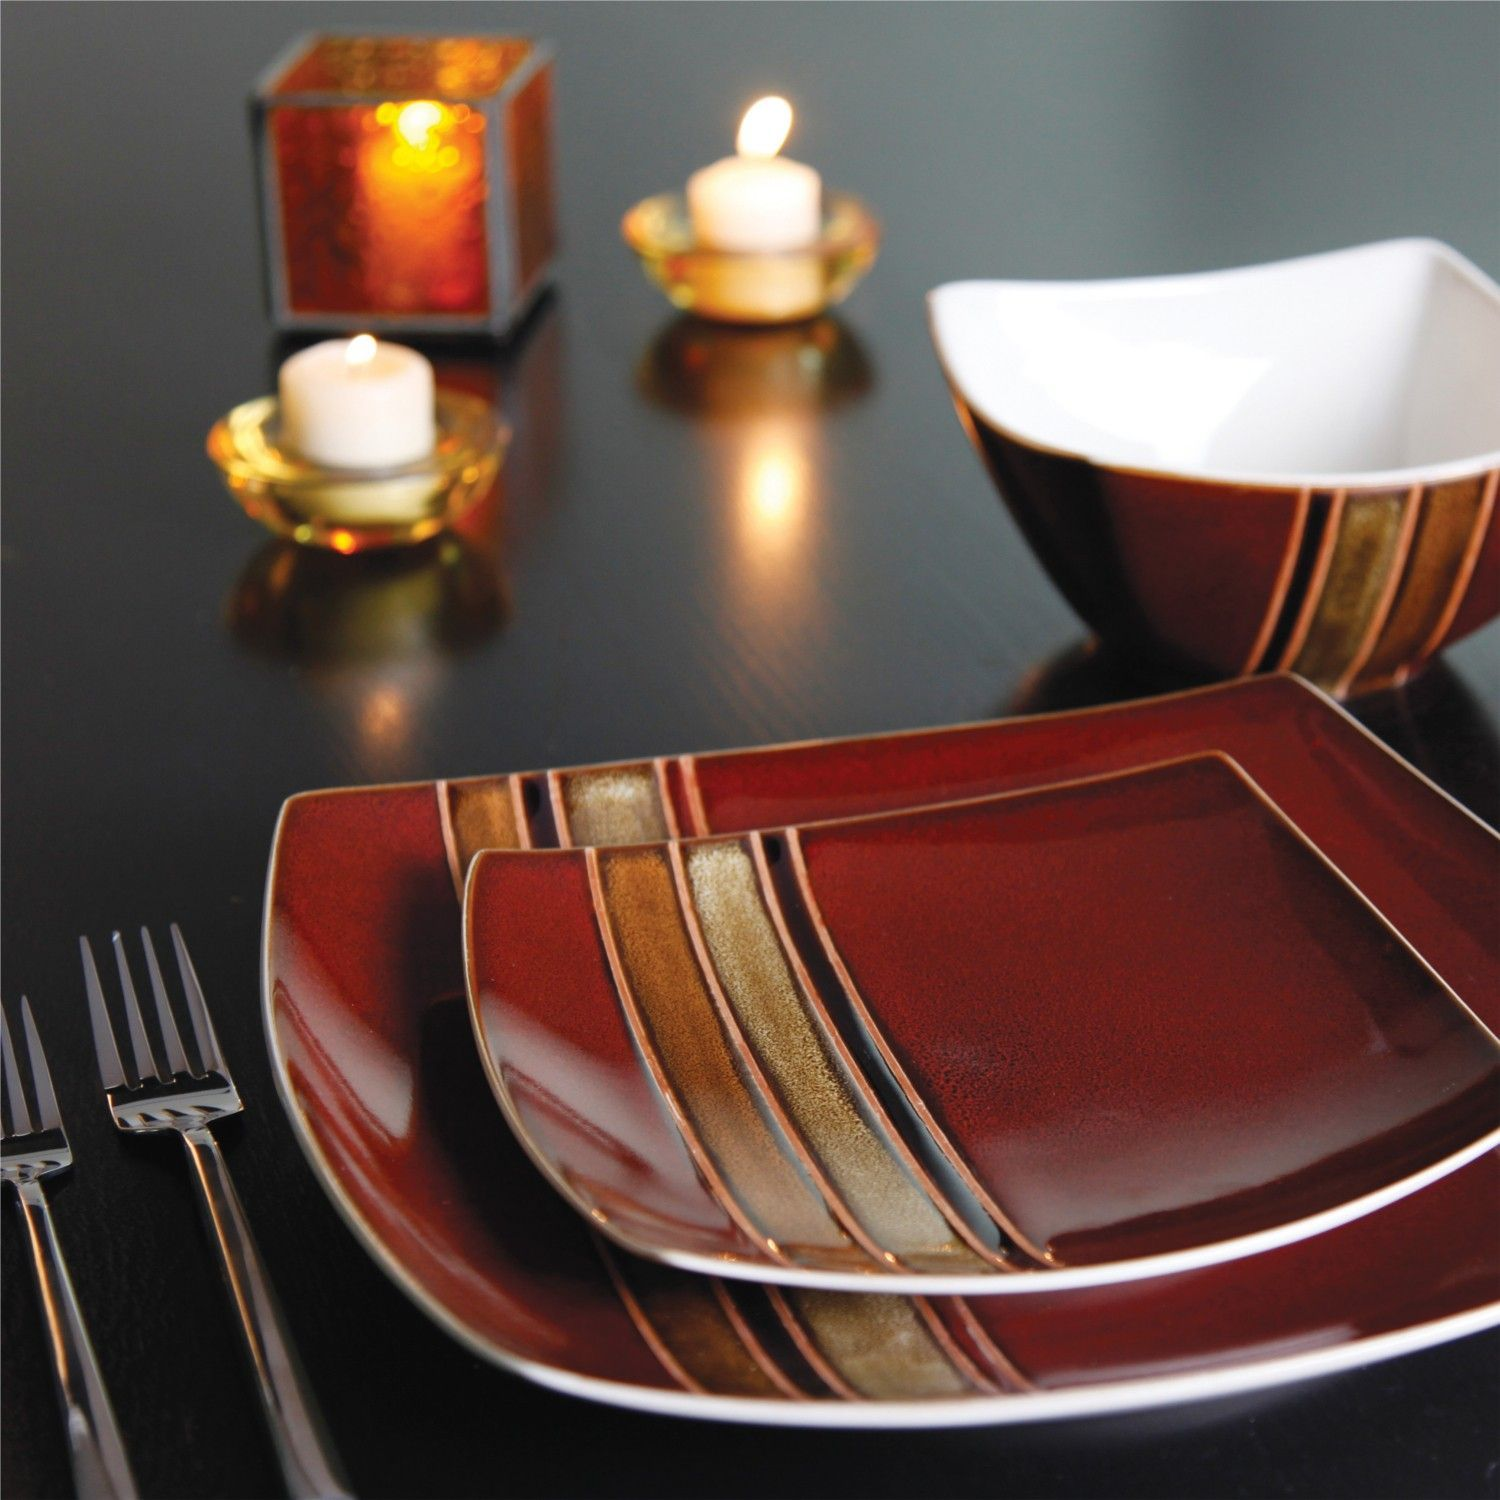 Set The Mood For A Romantic Dinner Any Night Of The Week With The